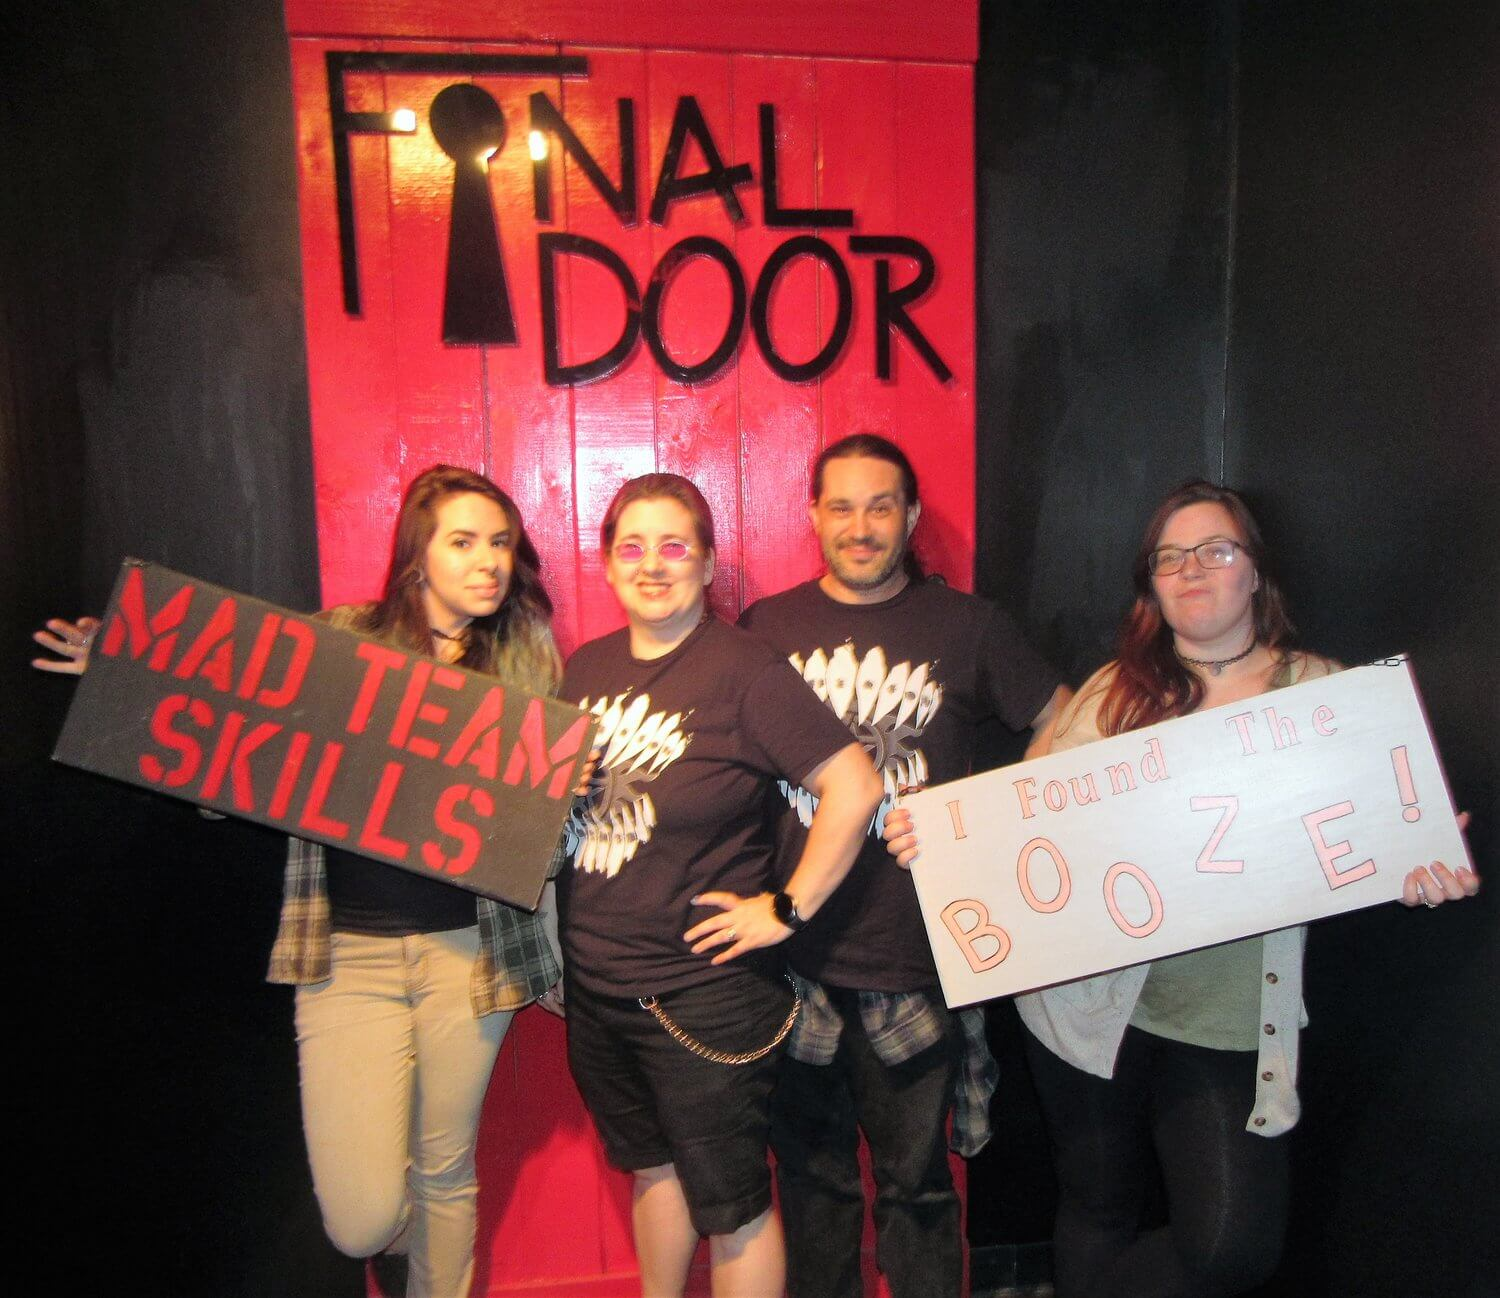 Photos from Review Trip  sc 1 st  The Scare Factor & Blackout at The Final Door 2017 Review - The Scare Factor Escape Revie